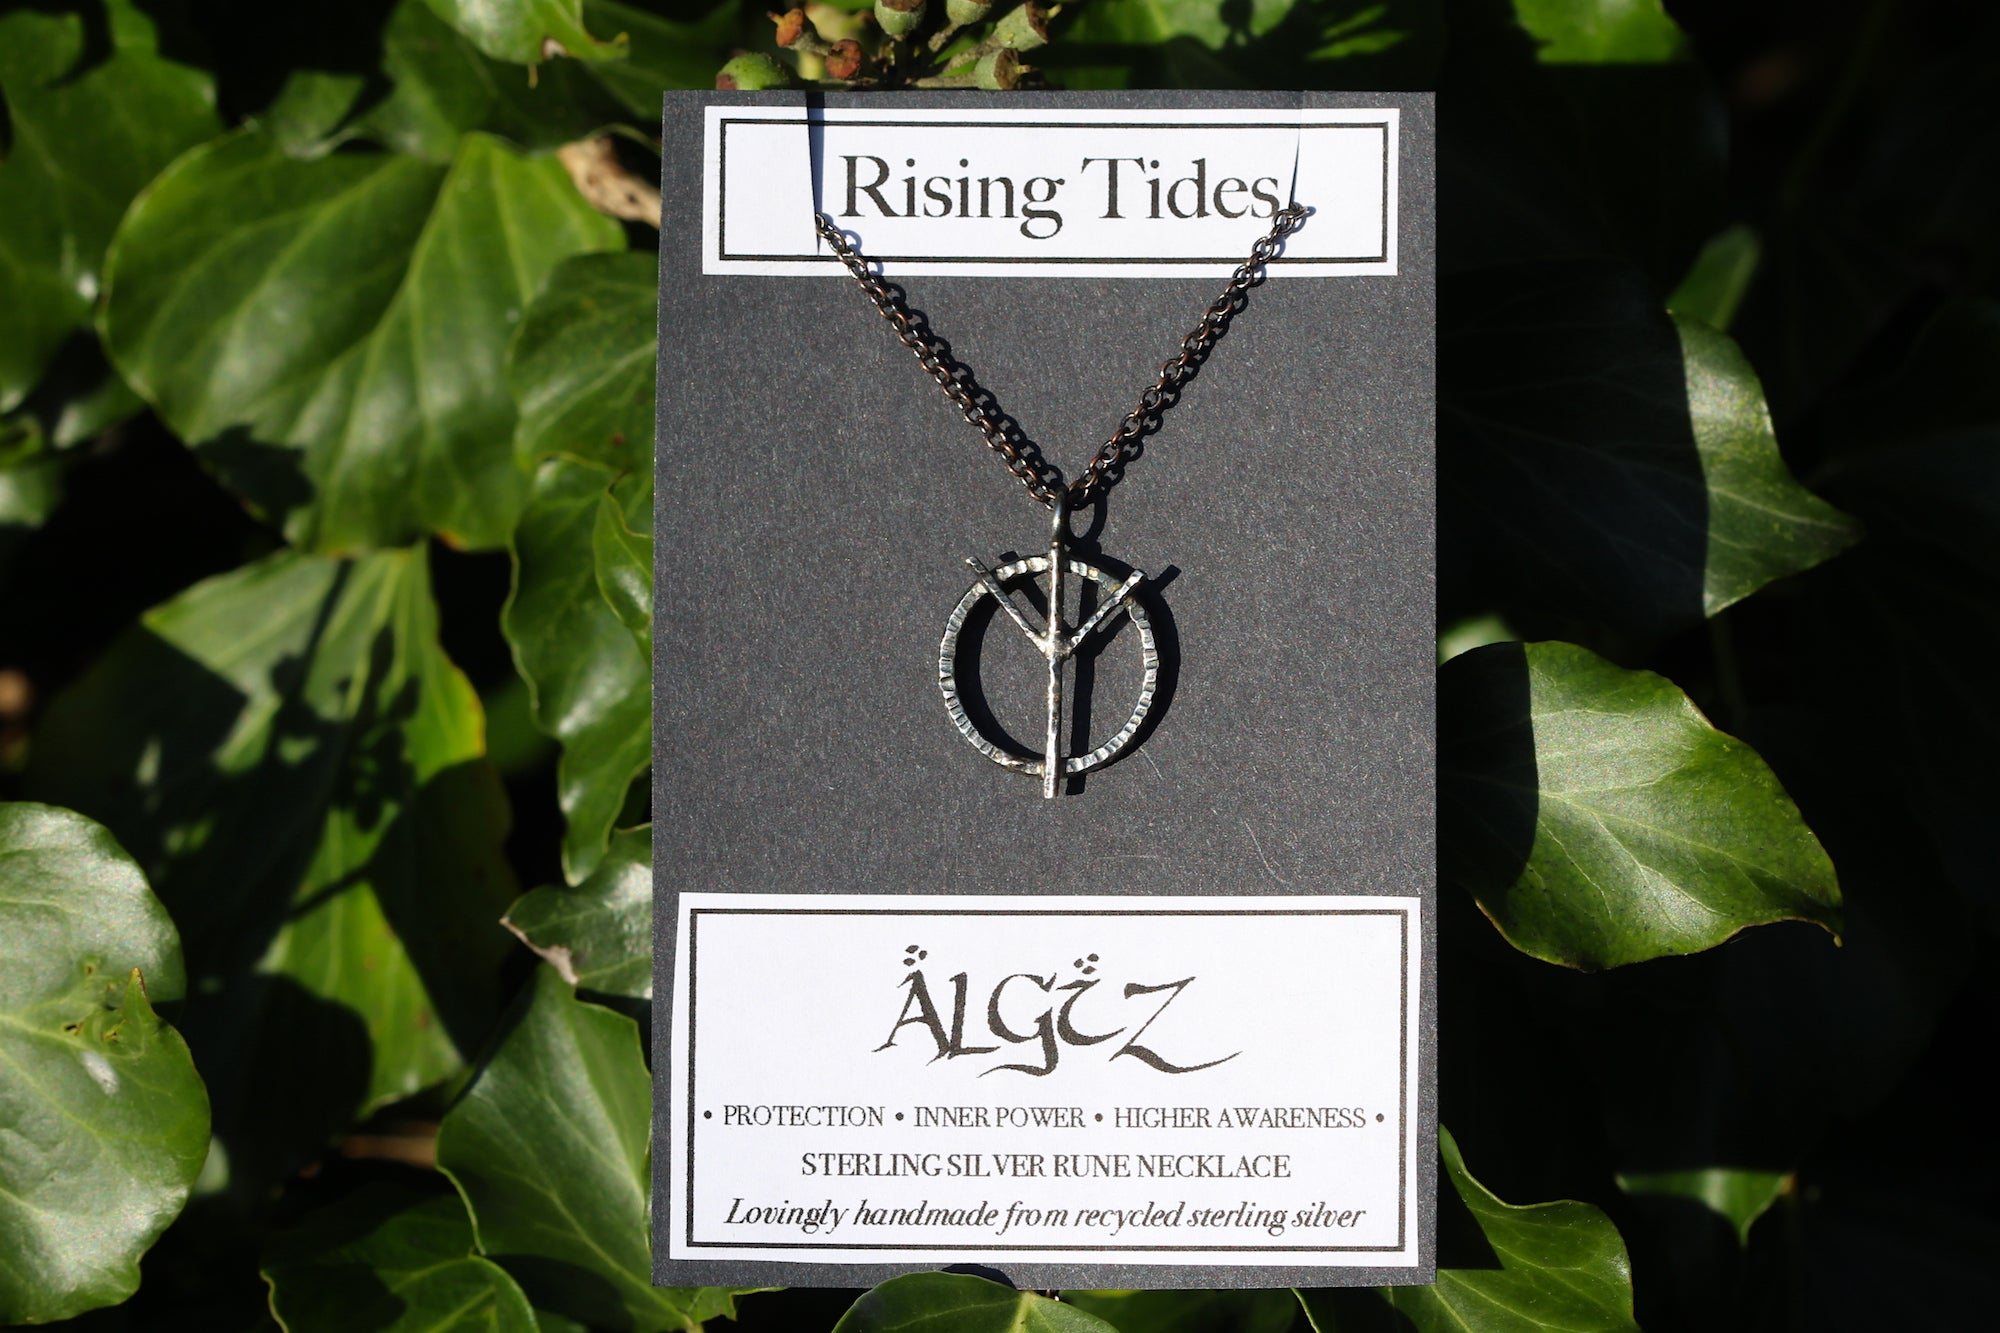 ALGIZ Sterling Silver Rune Necklace